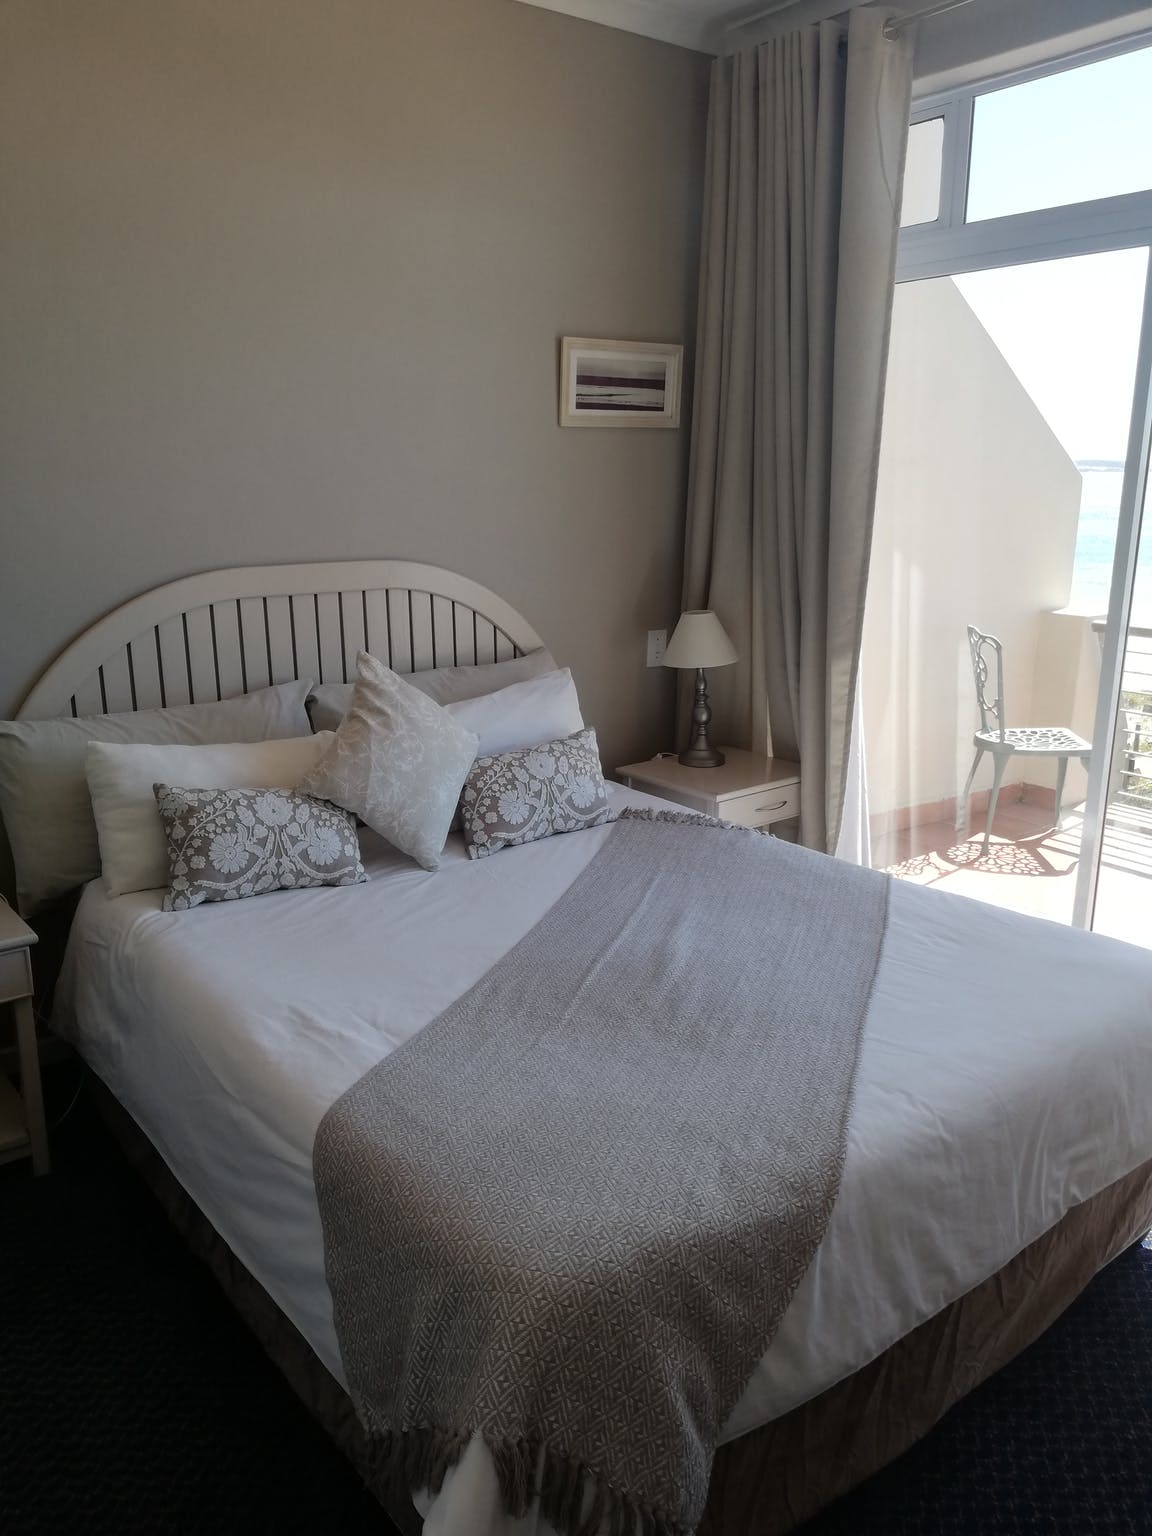 Holiday apartment Milnerton, Fourjay Rd, Holiday apartment for rent